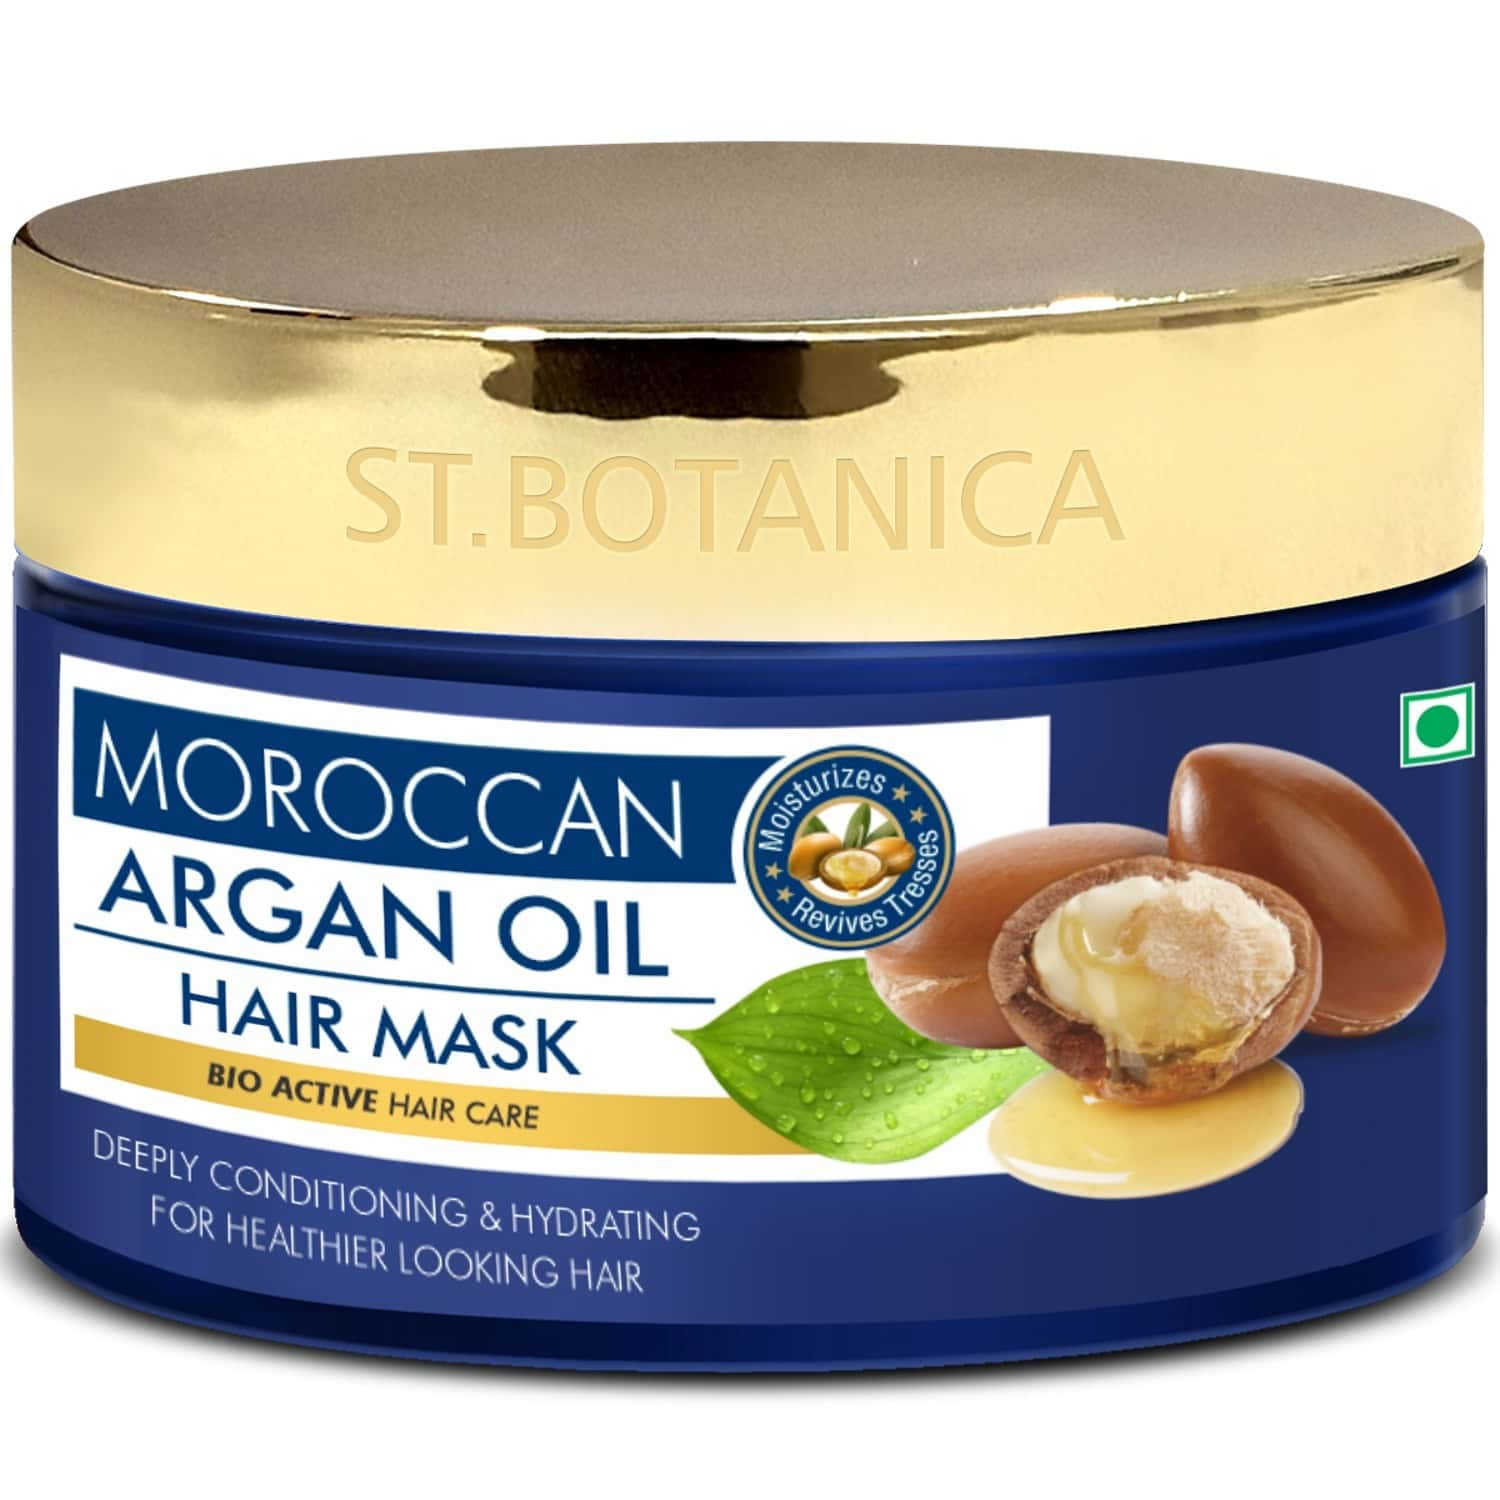 Stbotanica Moroccan Argan Hair Mask - Deep Conditioning & Hydration For Healthier Looking Hair - 200 Ml